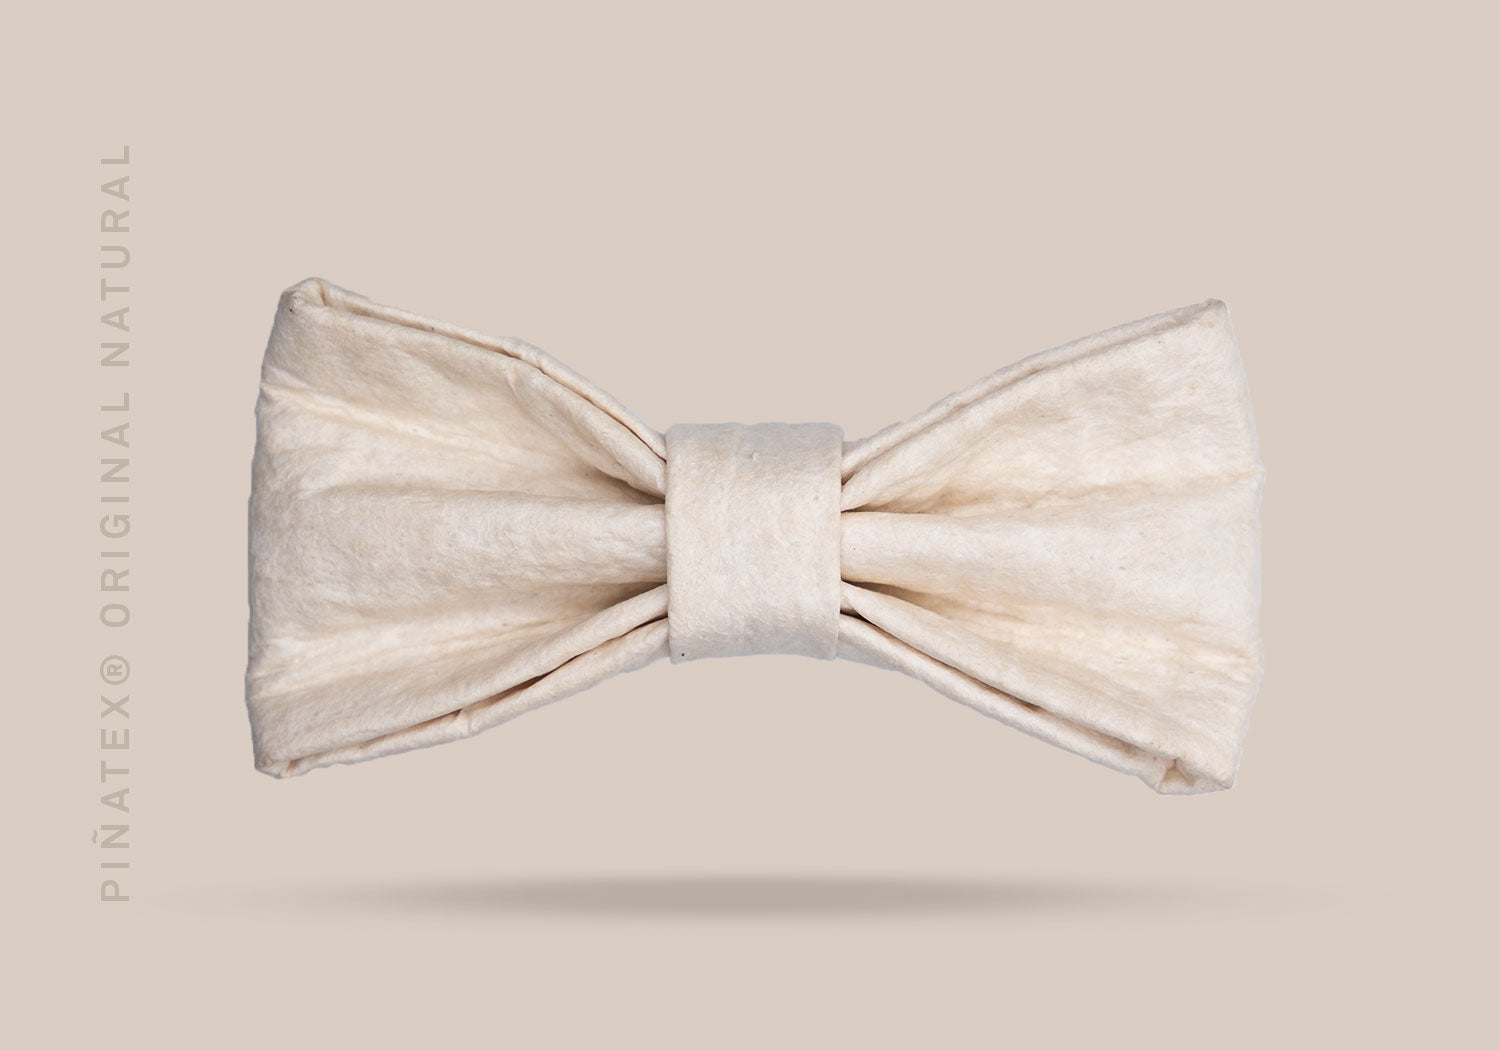 BOW TIE - Piñatex® Natural